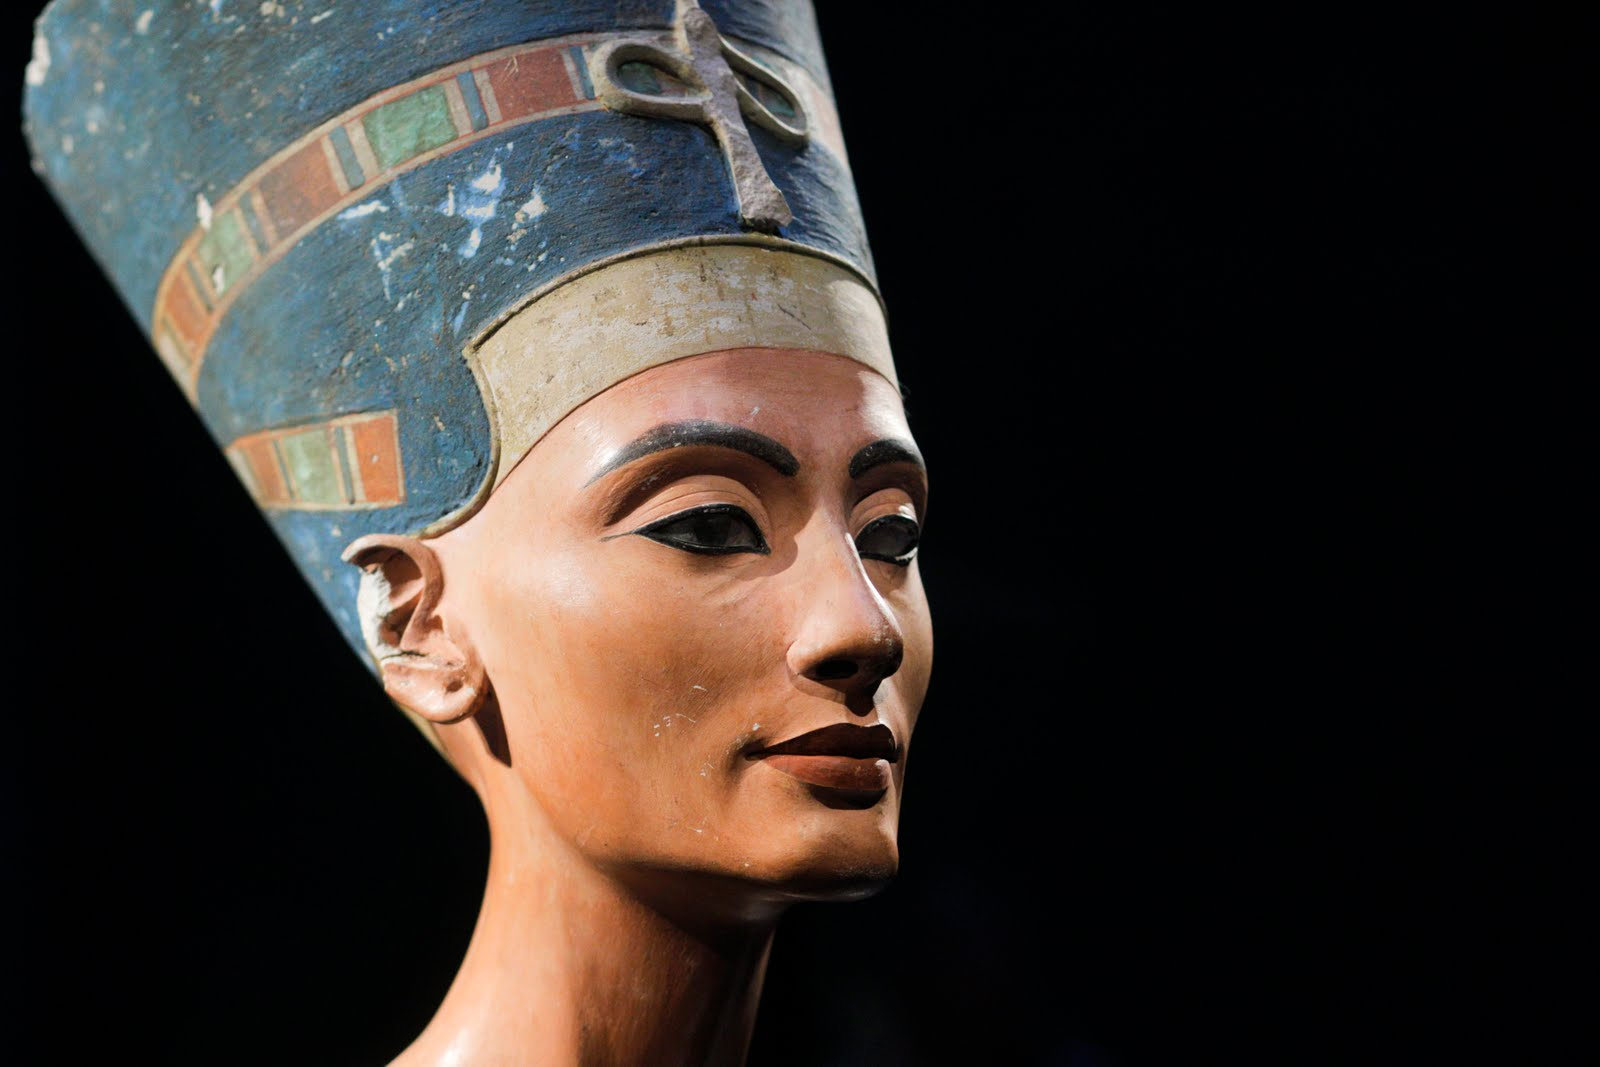 Facts You May Not Have Known About Queen Nefertiti The Great Royal Wife